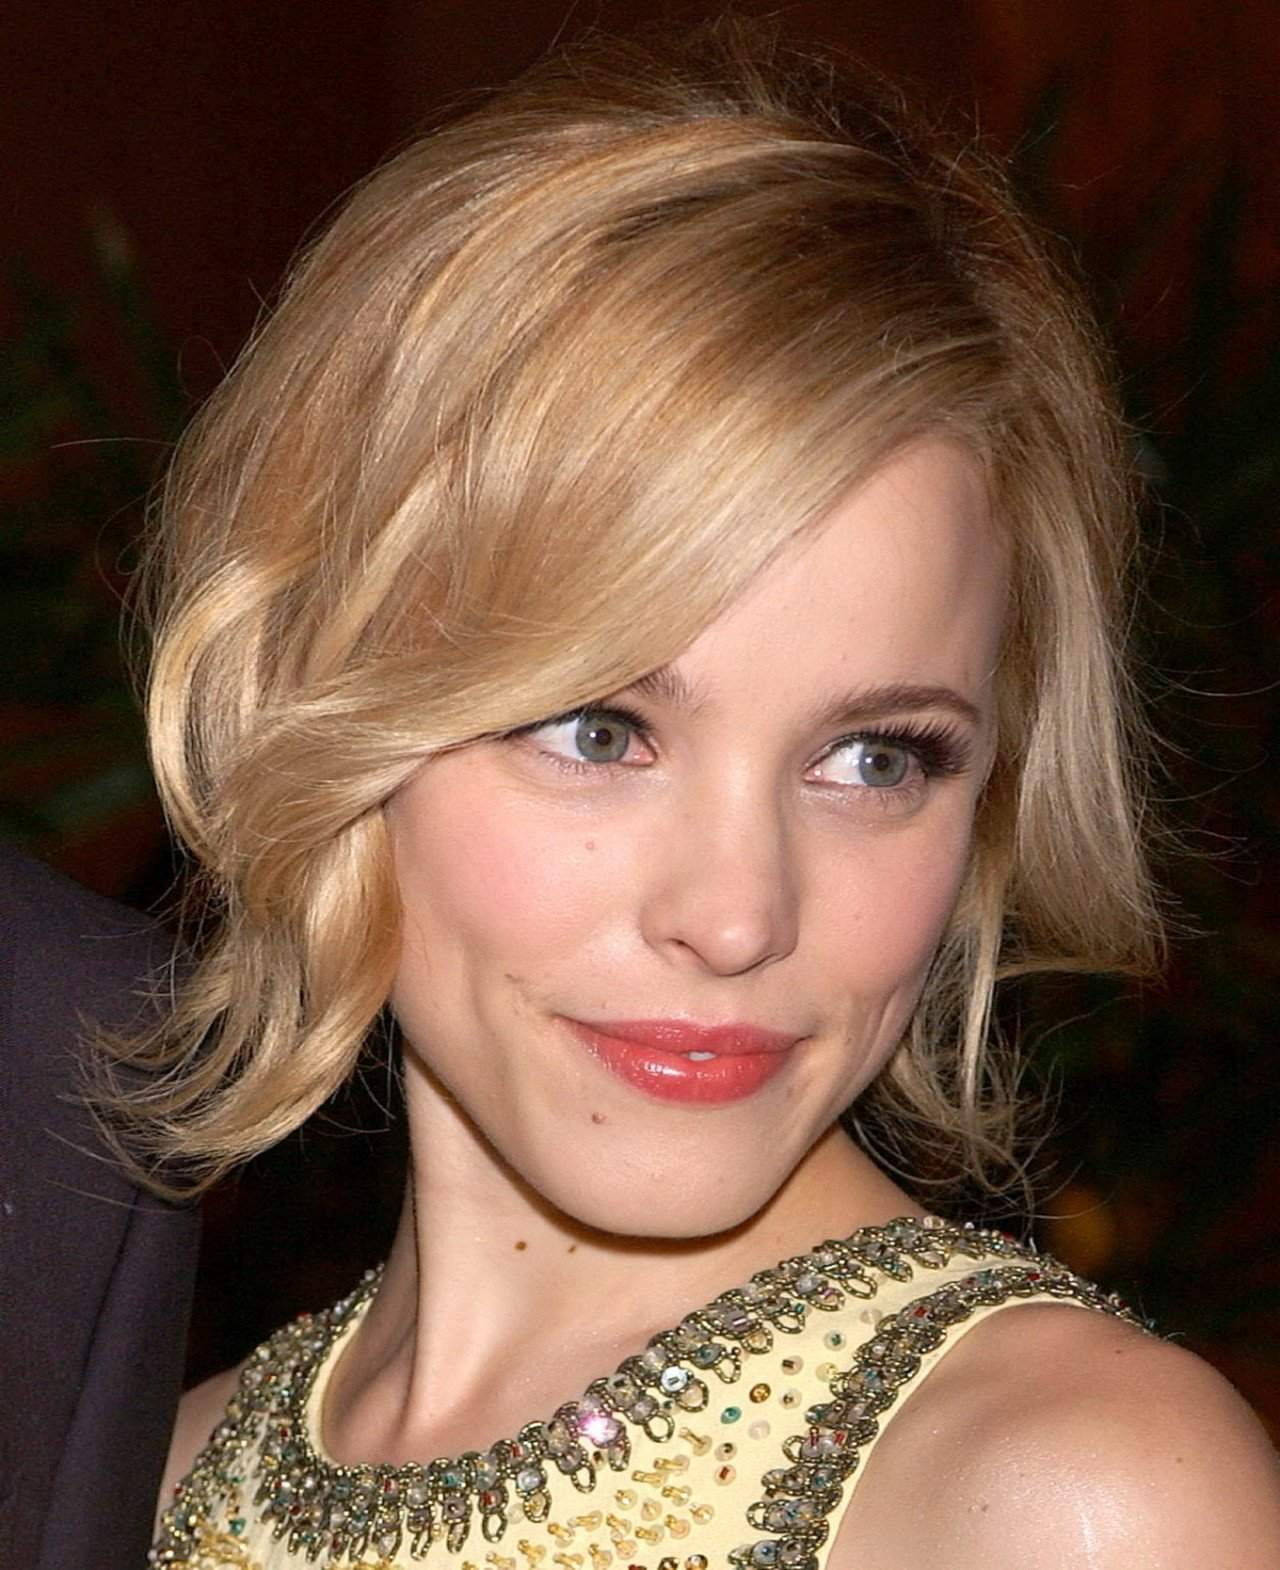 rachel_mcadams_scientific_awards_2006_20080905_01.jpg 약스압) 레이첼 누나 20대시절.jpg